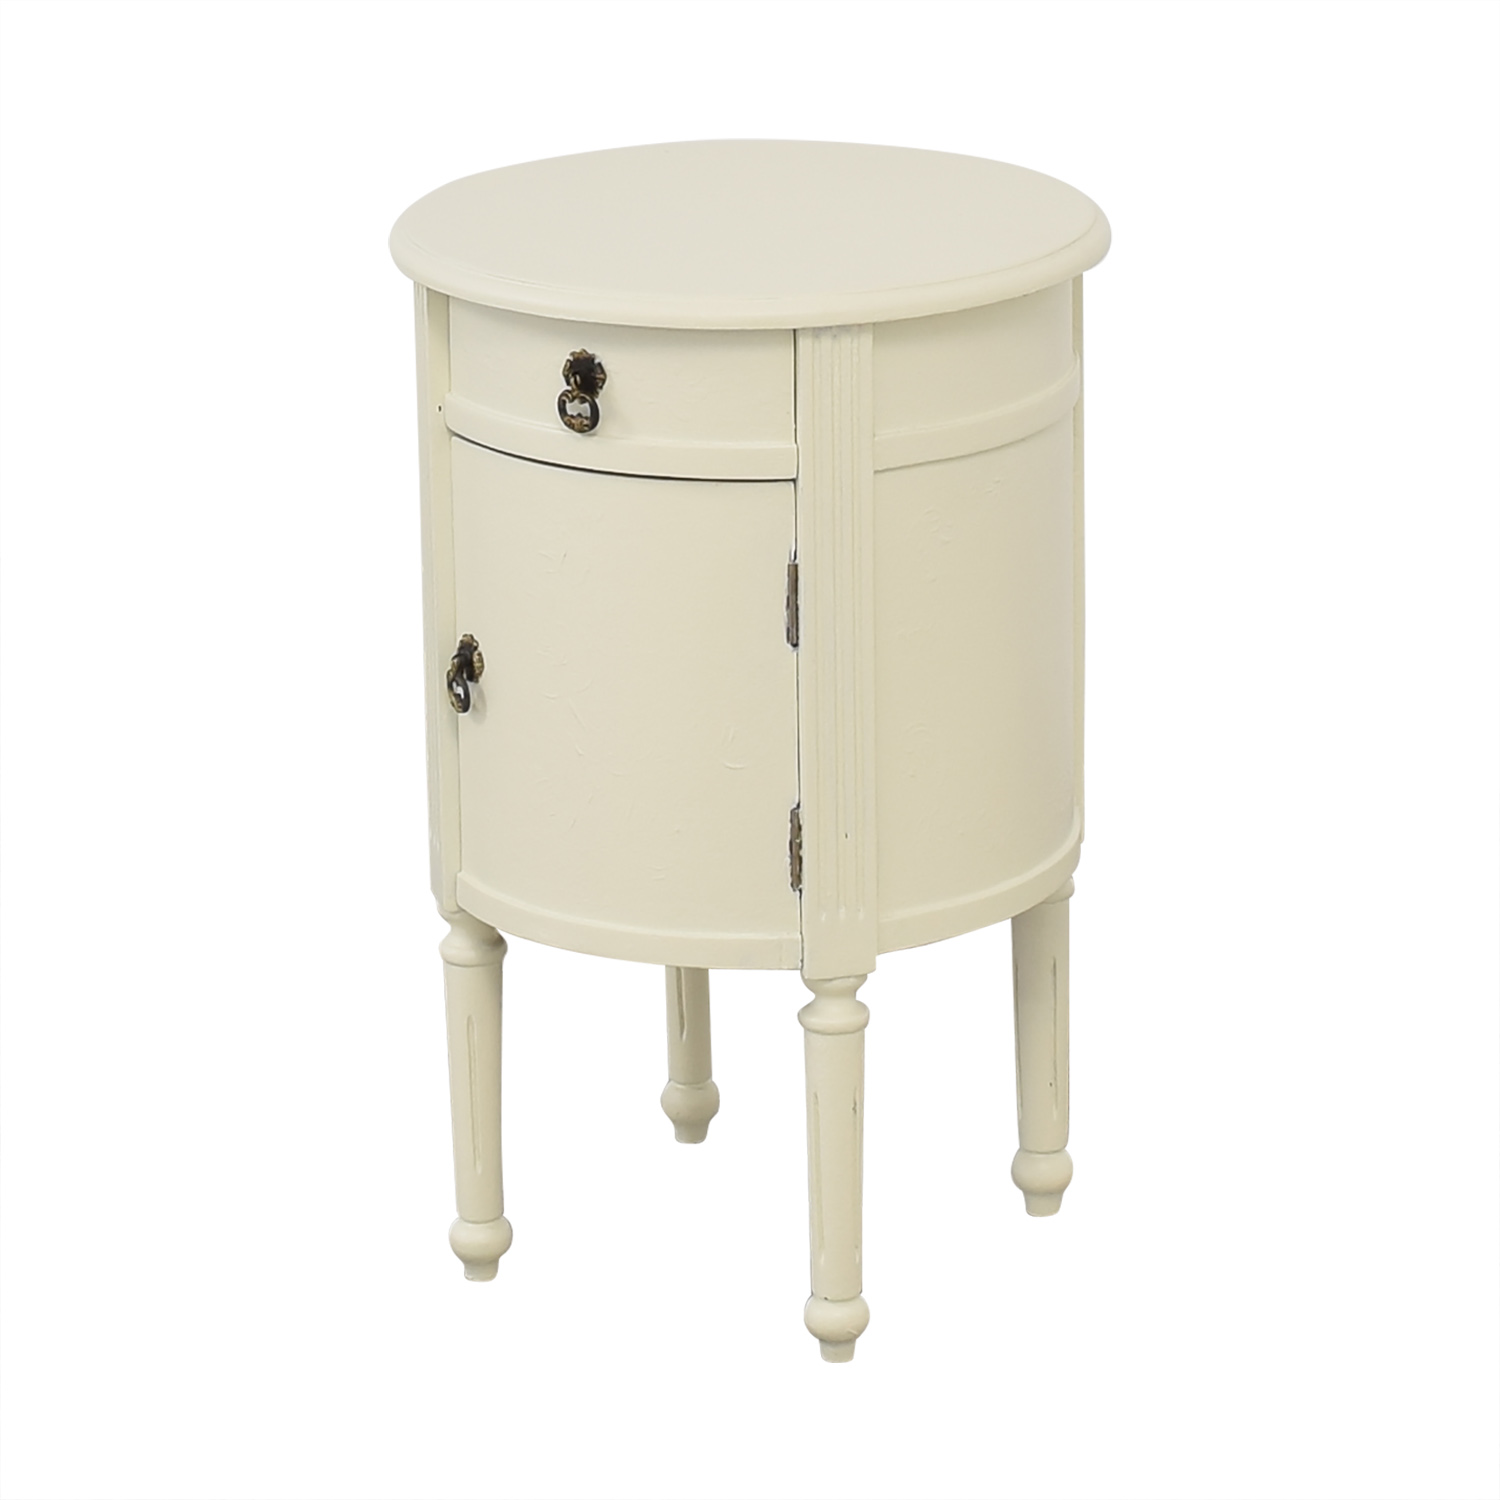 Round Side Table sale